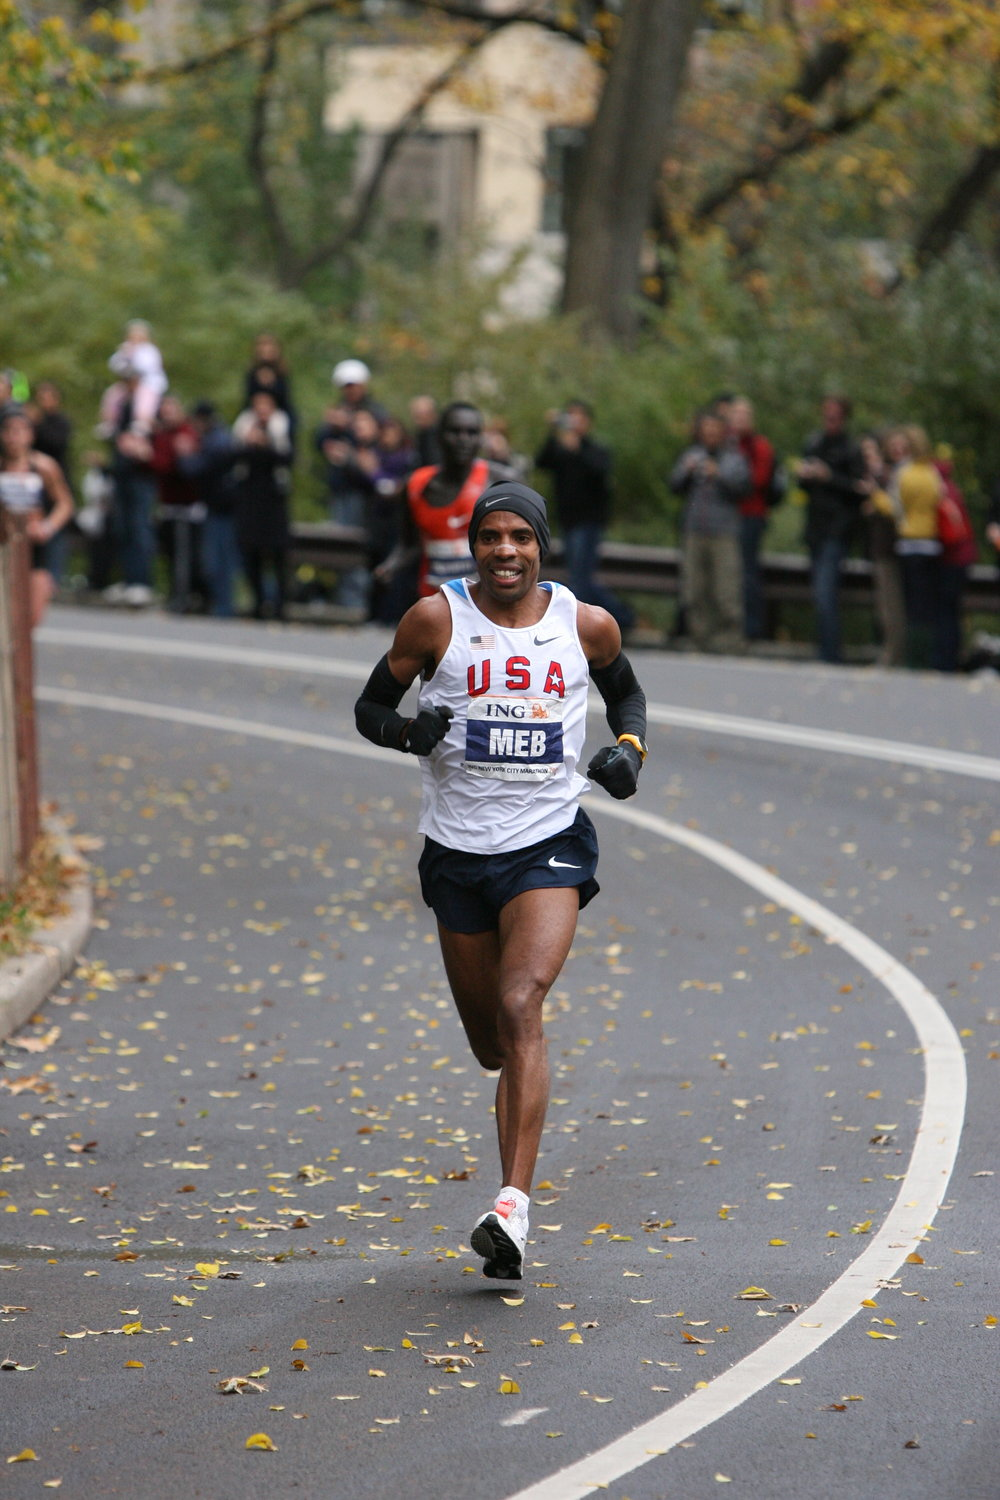 Building his lead after making a move to the front in Central Park